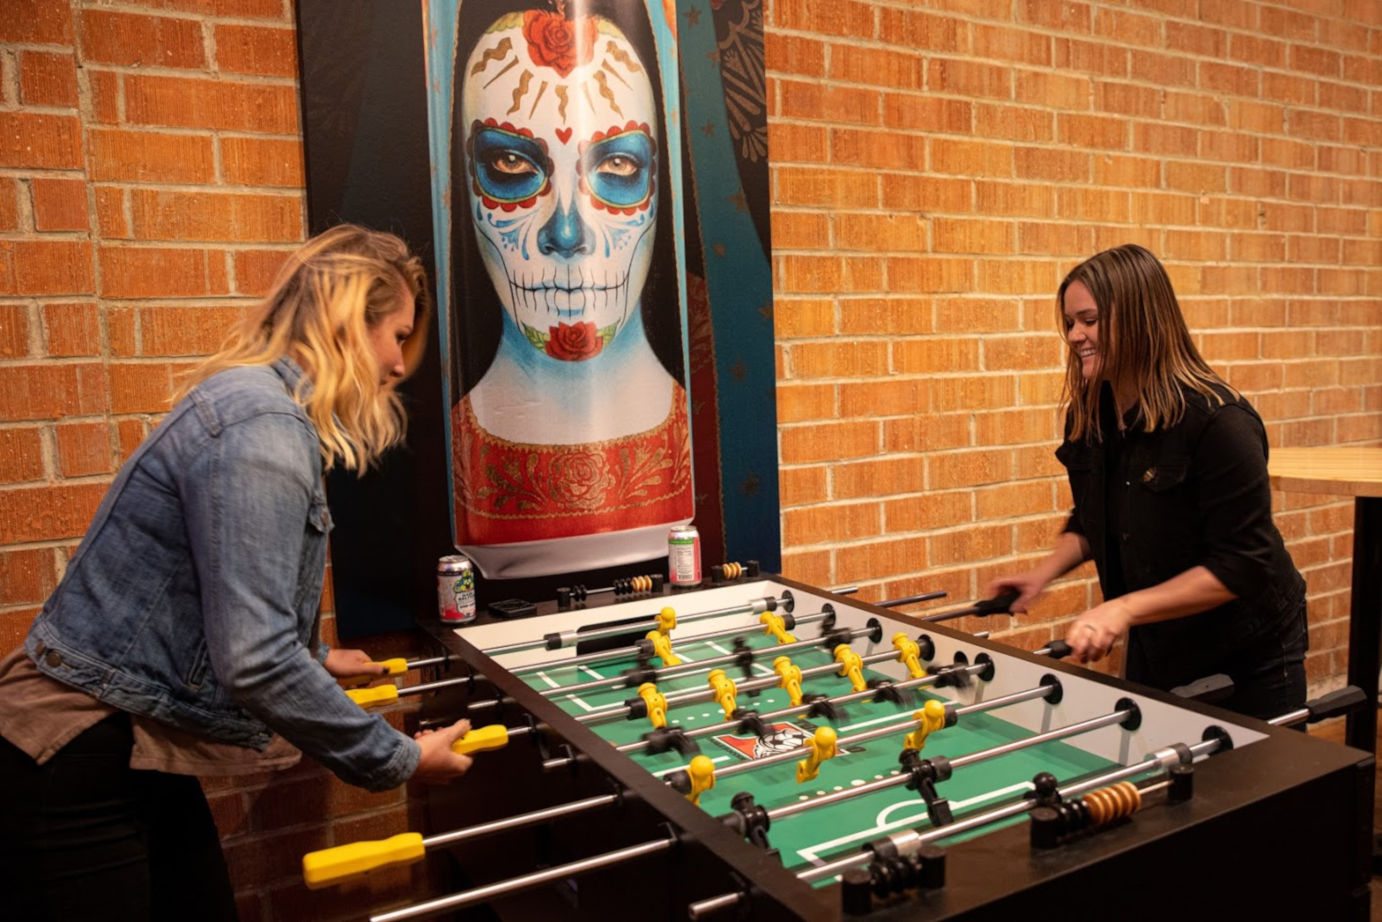 Teo girls playing table soccer, and picture on the wall,